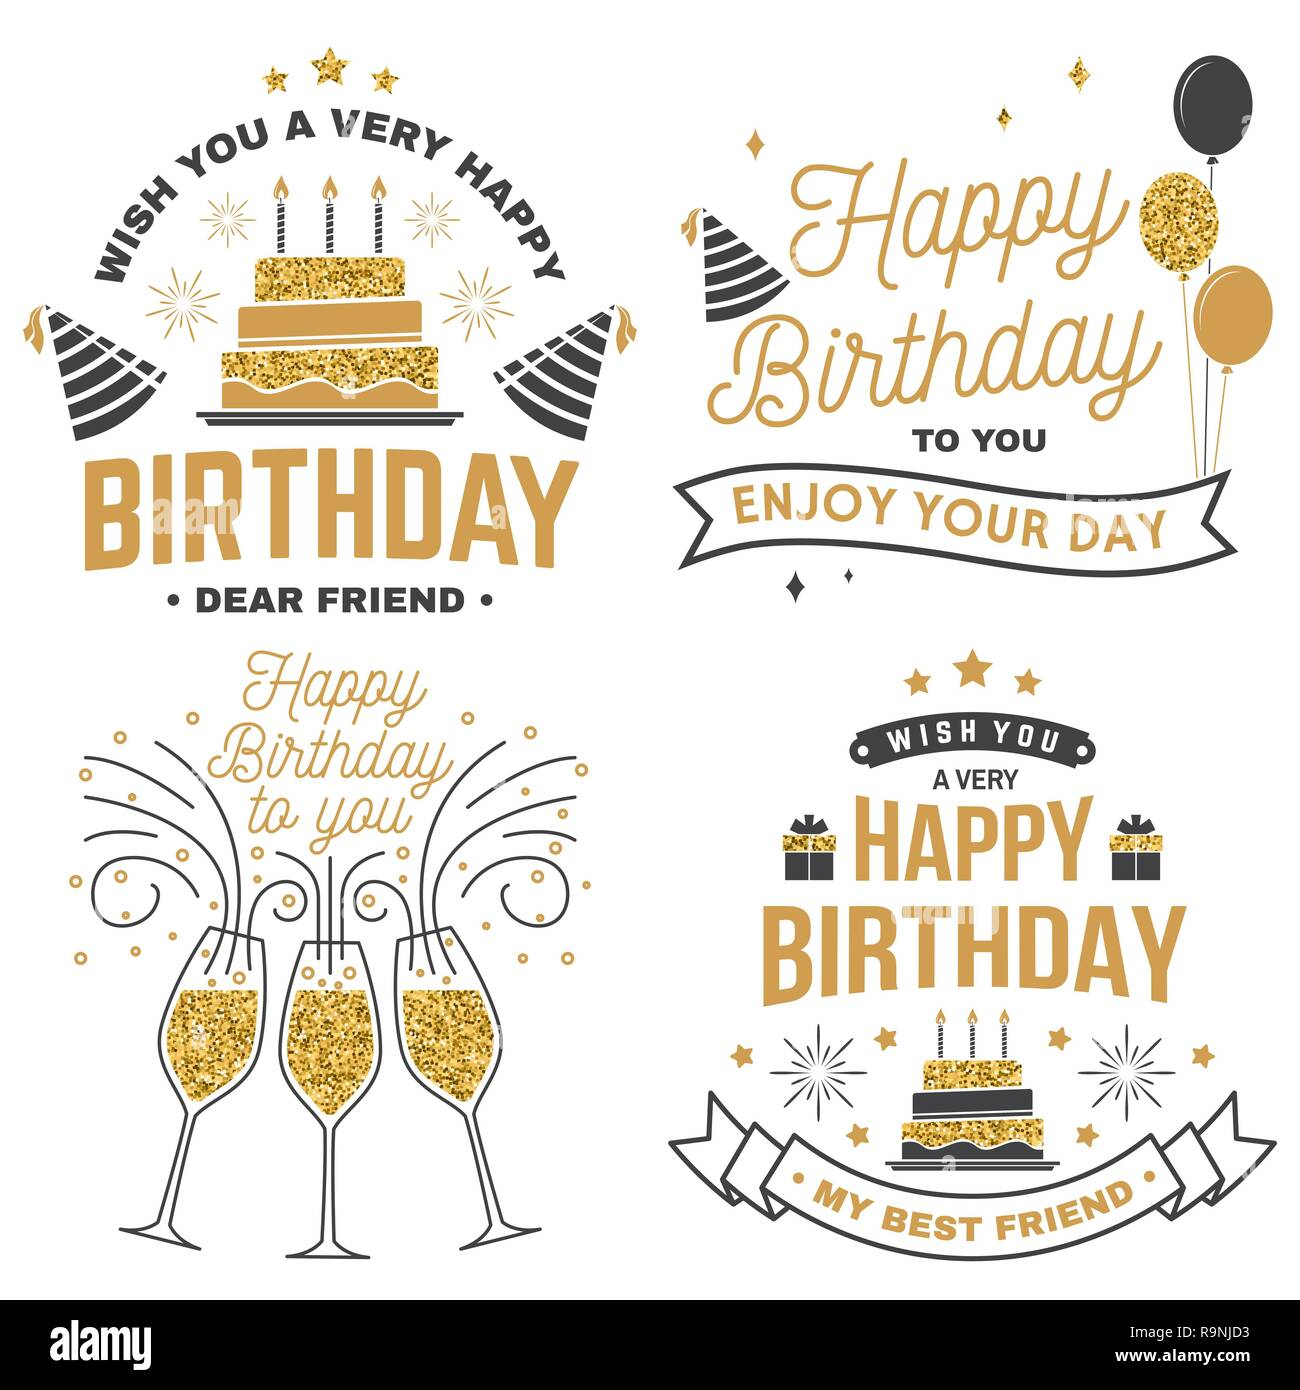 Wish You A Very Happy Birthday Dear Friend Badge Sticker Card With Birthday Hat Firework And Cake With Candles Vector Set Of Vintage Typographic Design For Birthday Celebration Emblem Stock Vector Image